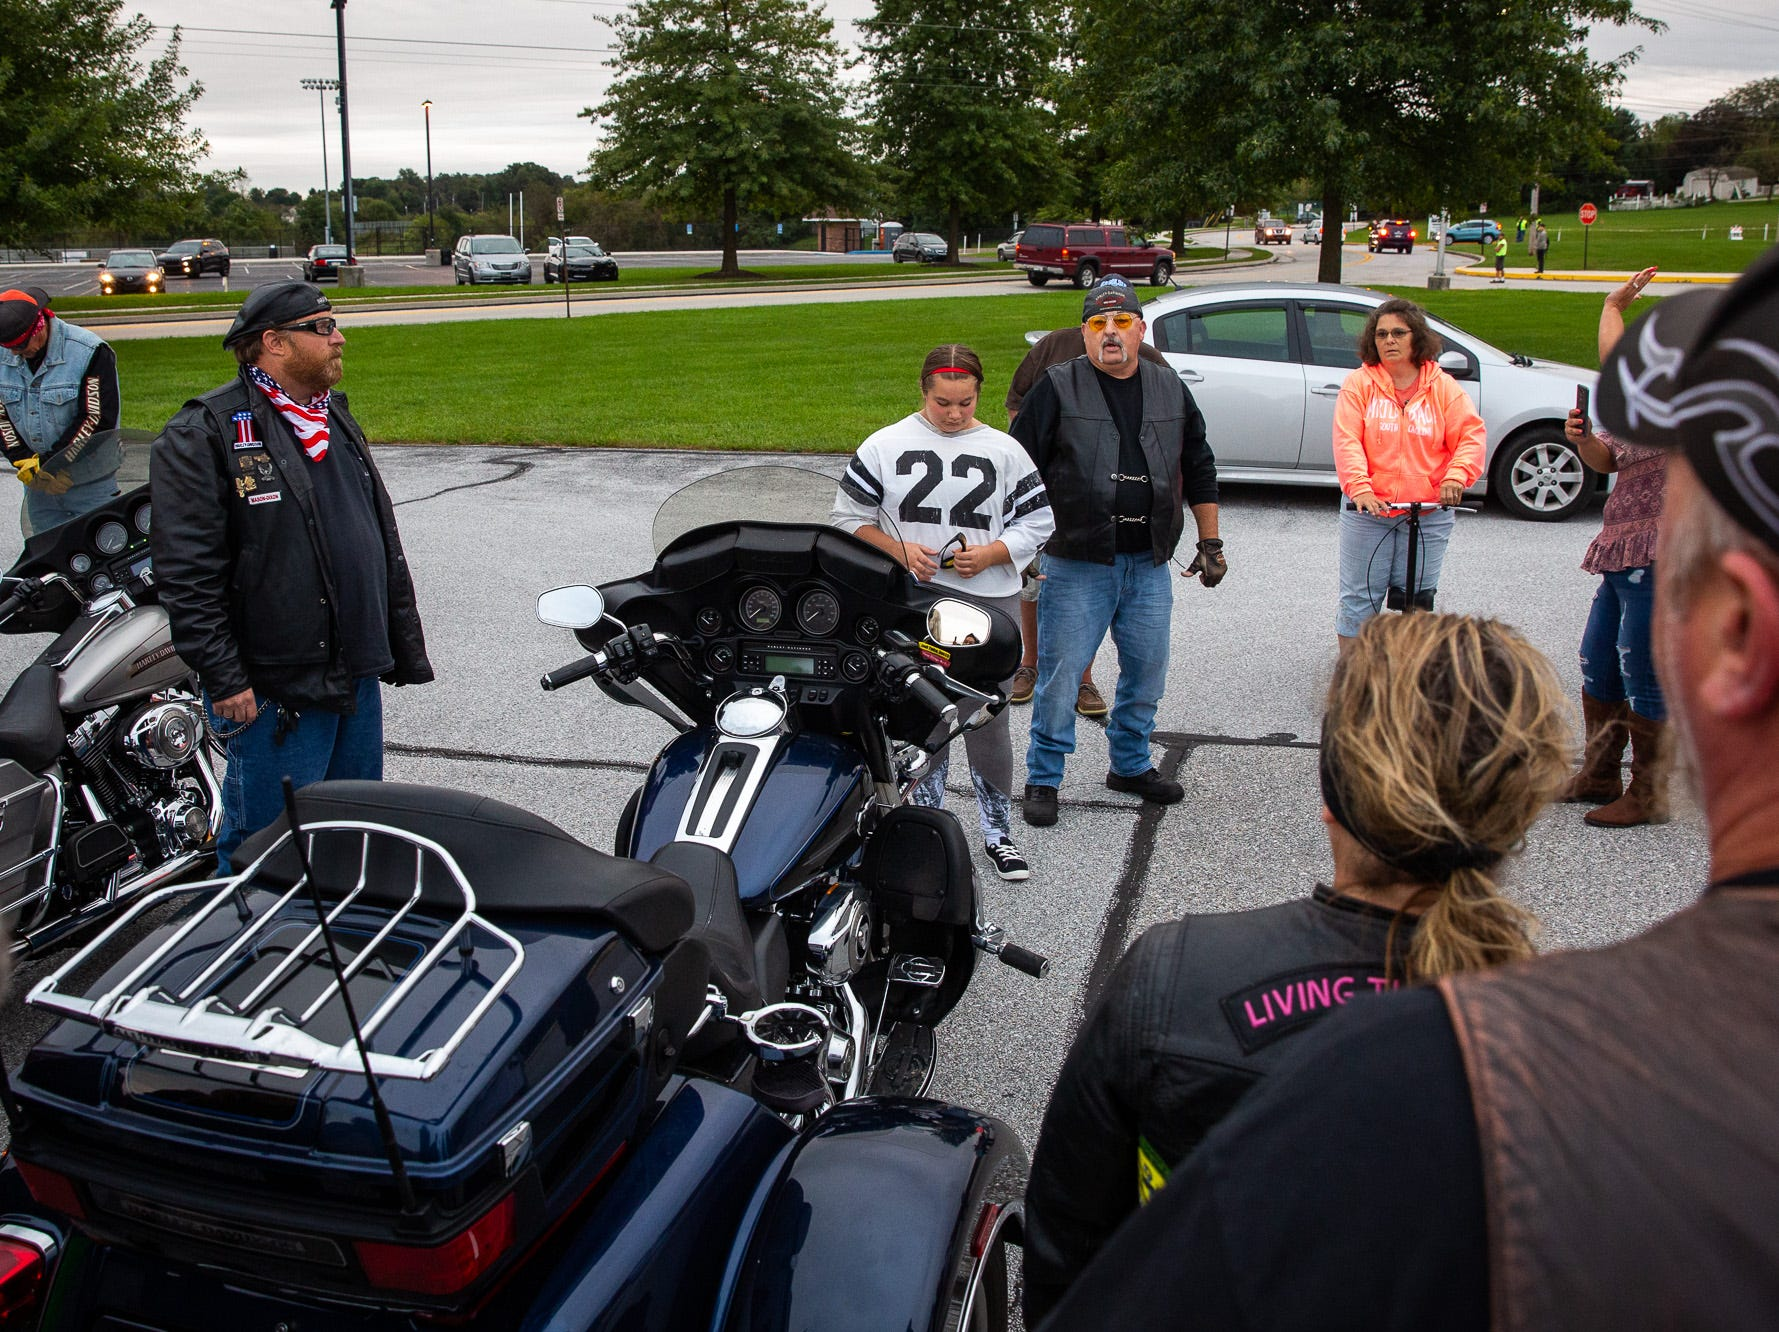 Byron Bechtel, a member of the Alliance of Bikers Aimed Toward Education biker group, speaks after escorting Aireana Mummerth, a 6th grader,  to school at Emory H. Markle Intermediate, Friday, Oct. 5, 2018, in Penn Township. The ride was organized to show their support for victims of bullying.